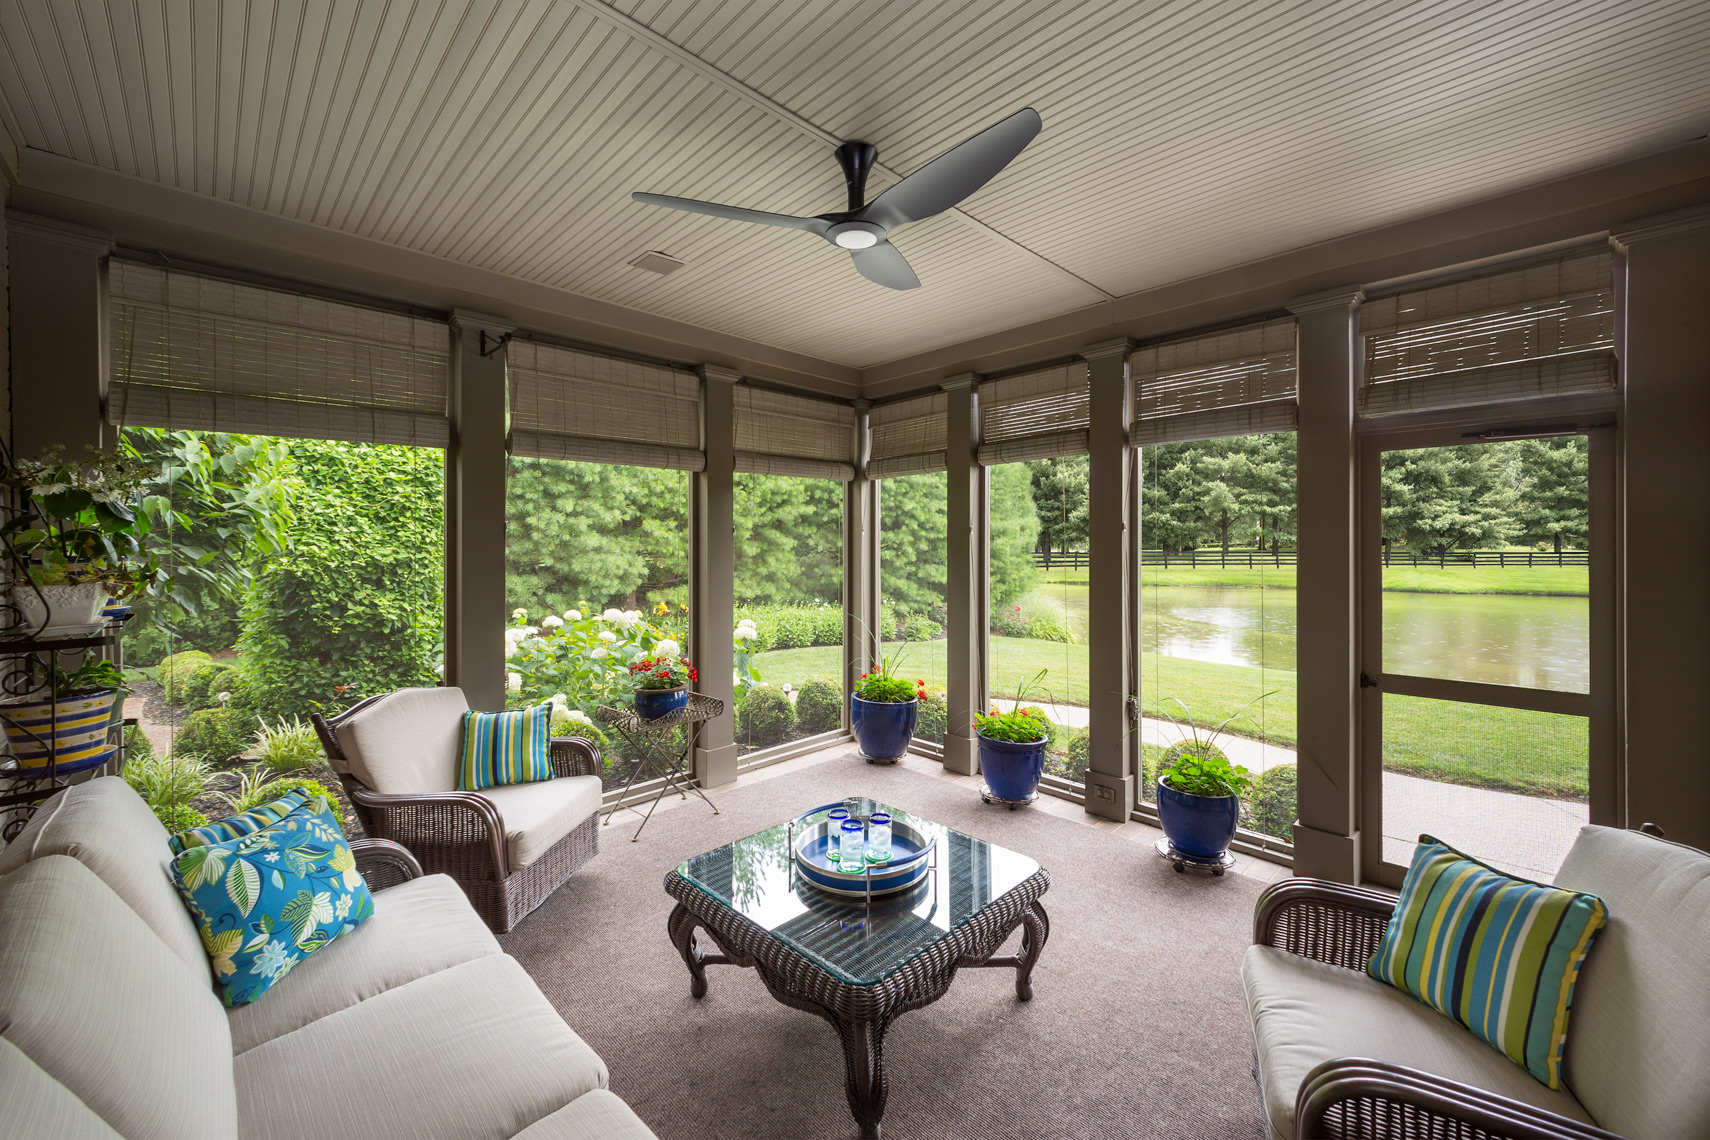 Screened porch with Haiku Fan overlooking lush landscaping and lake